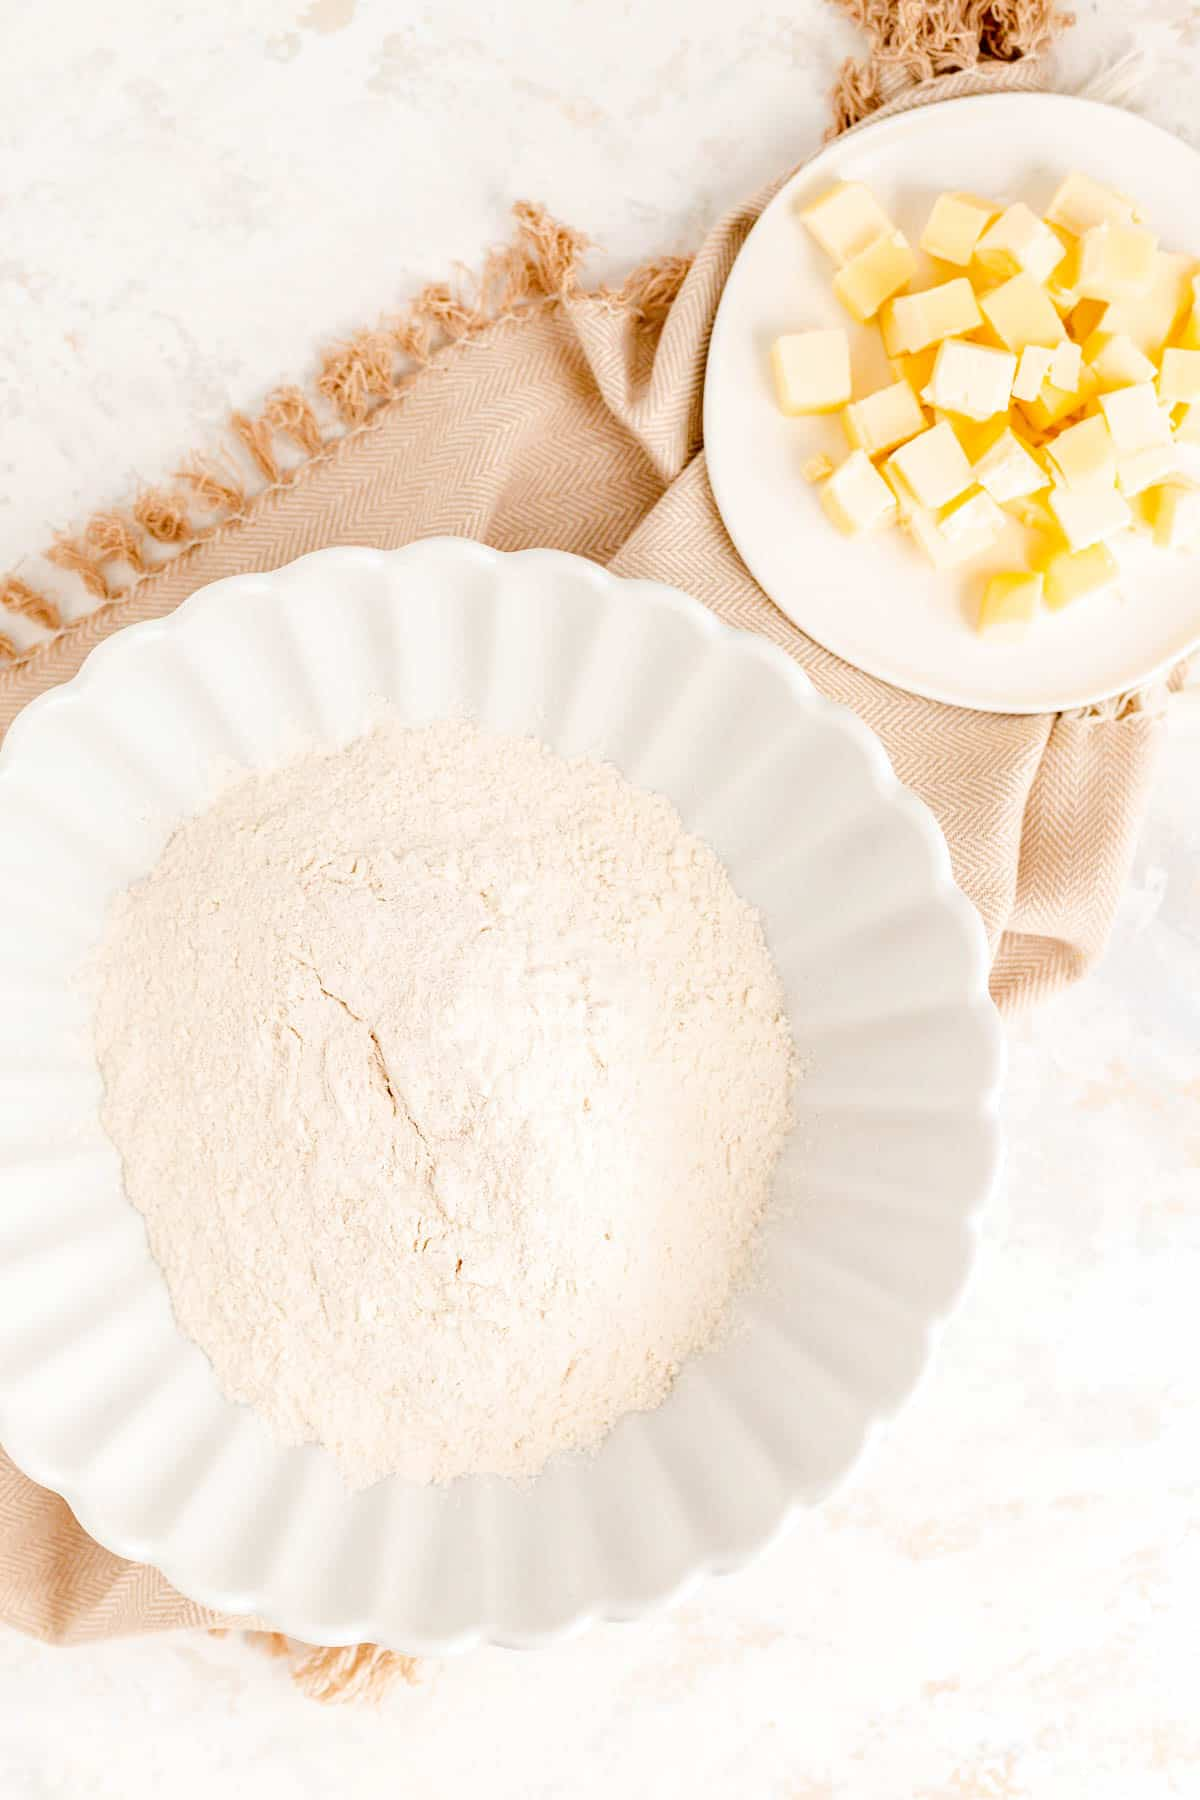 a bowl of dry ingredients and a small plate of cold butter cubes on a brown towel